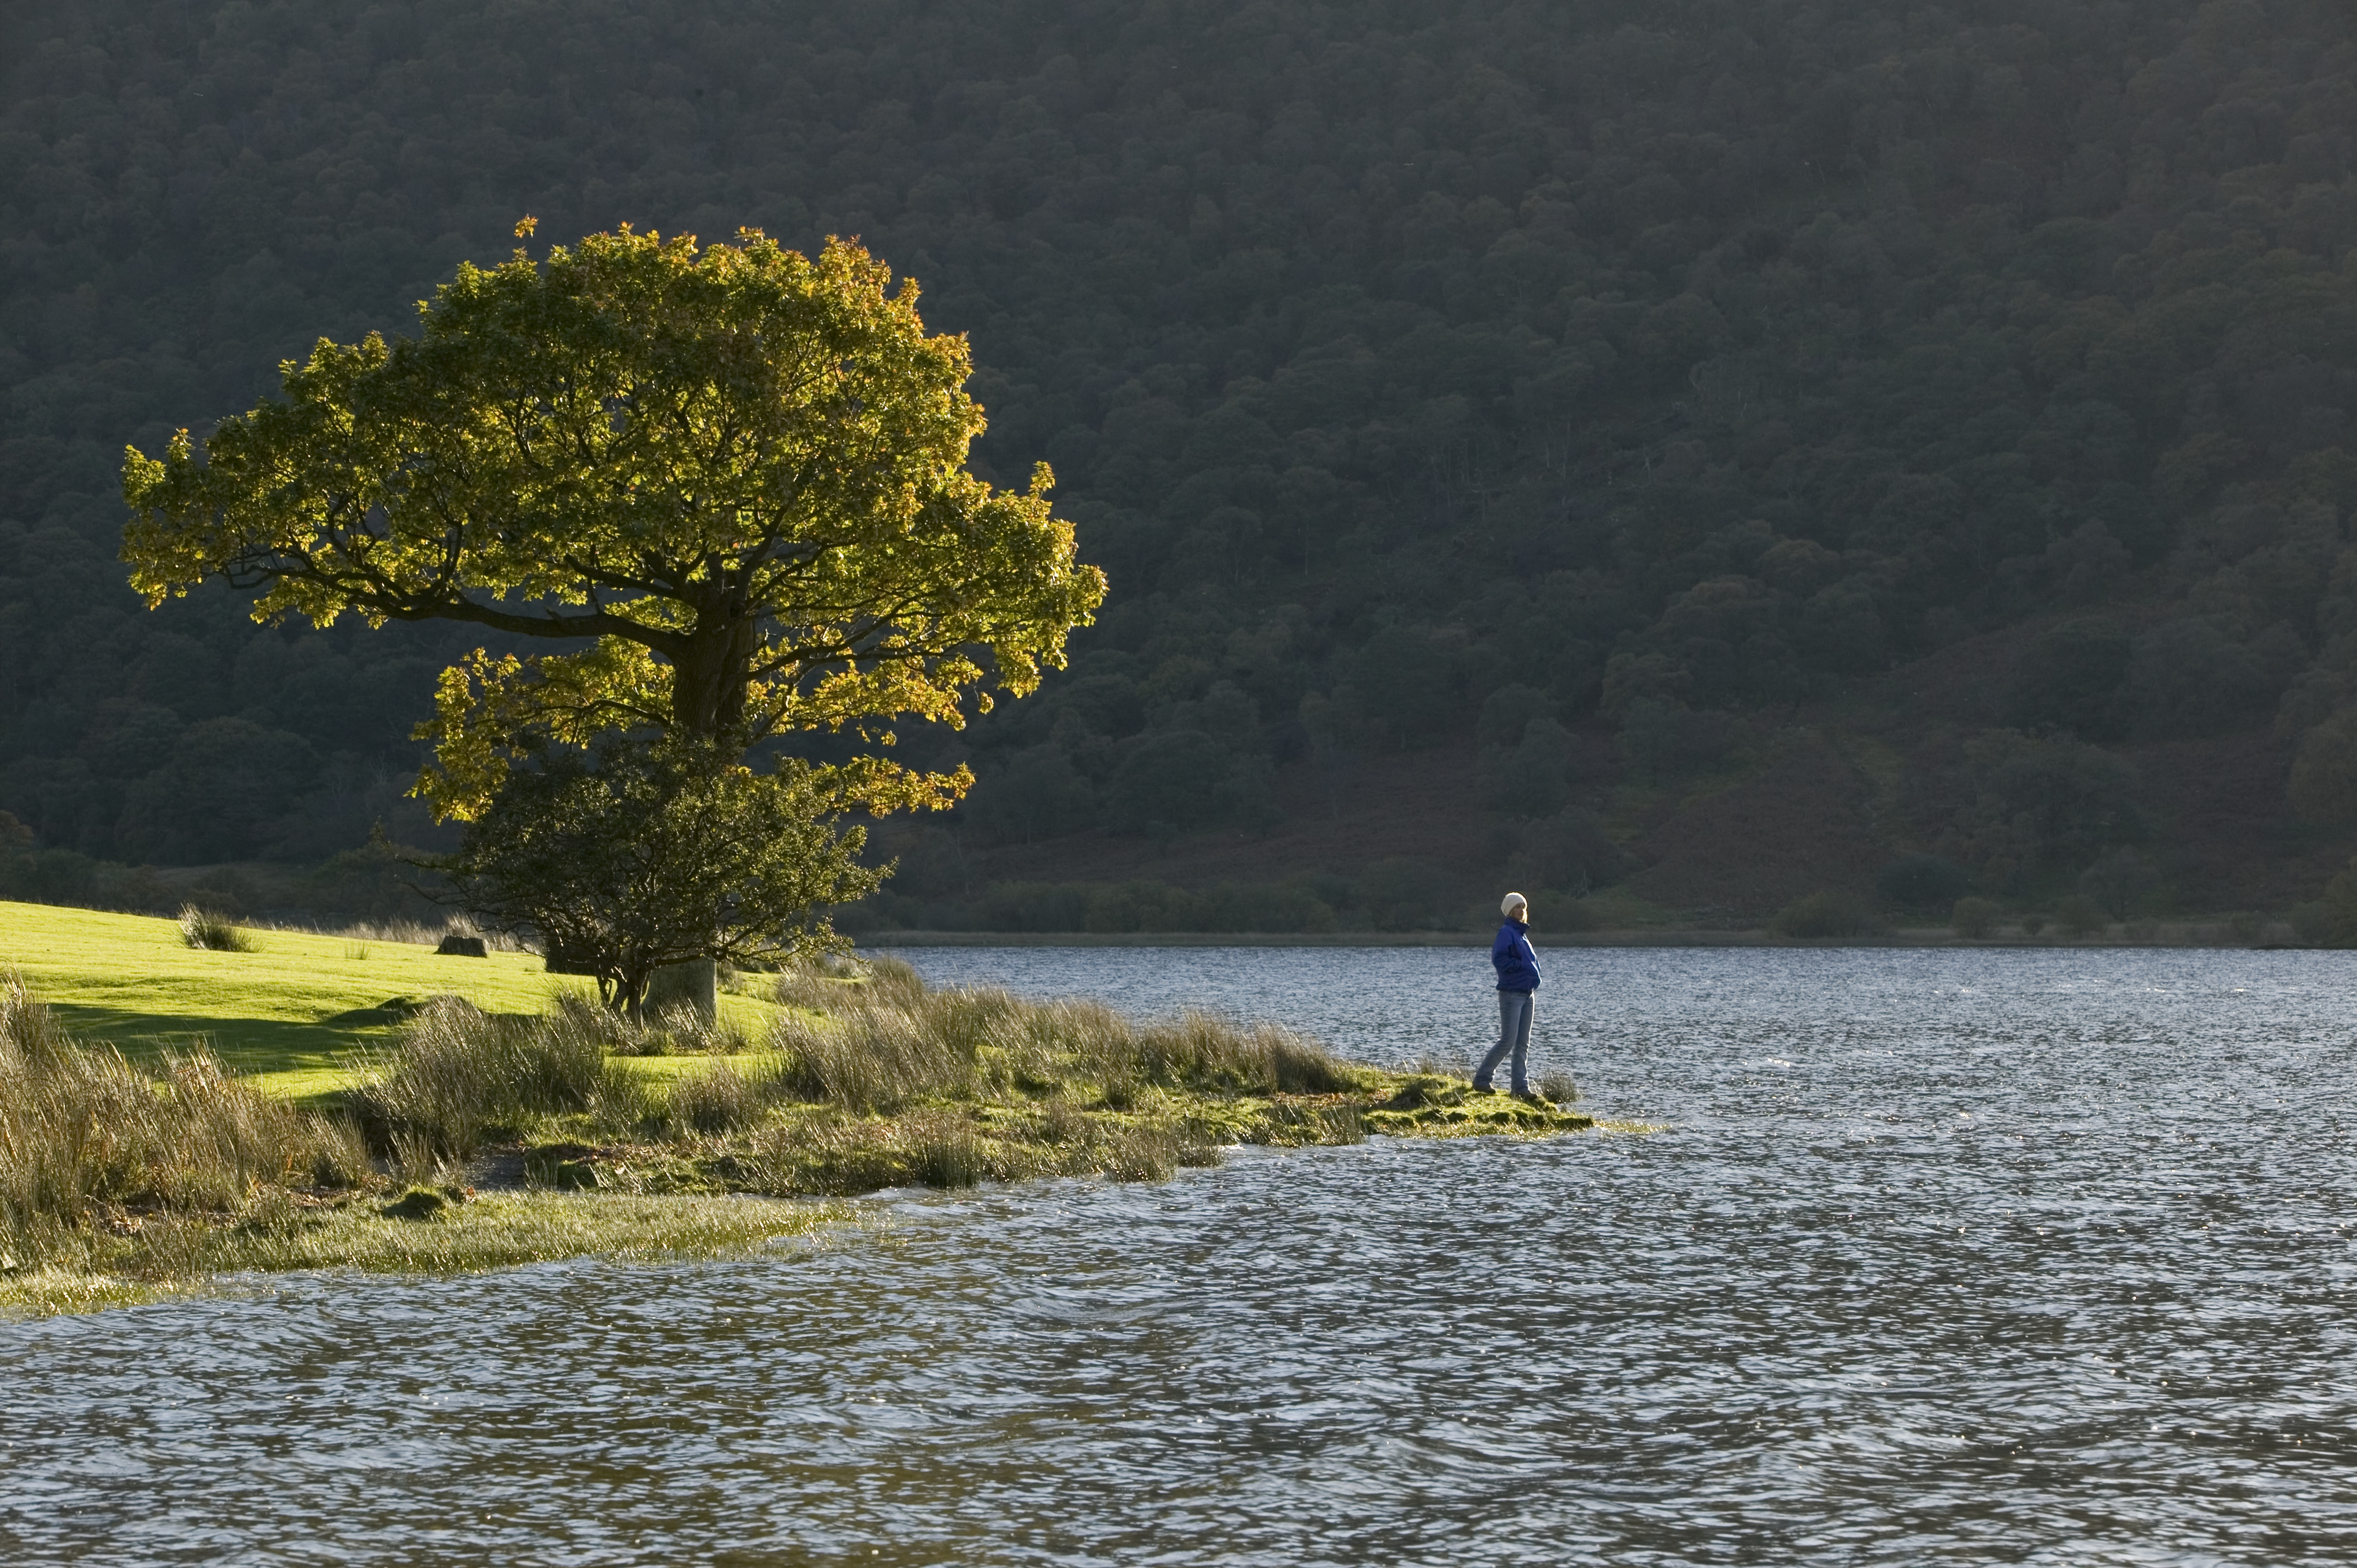 Enjoy a little solitude by a tranquil lake to rejuvenate your spirit. This is Crummock Water, where row boats are also available for hire. (Photo courtesy of www.cumbriaphoto.co.uk.)